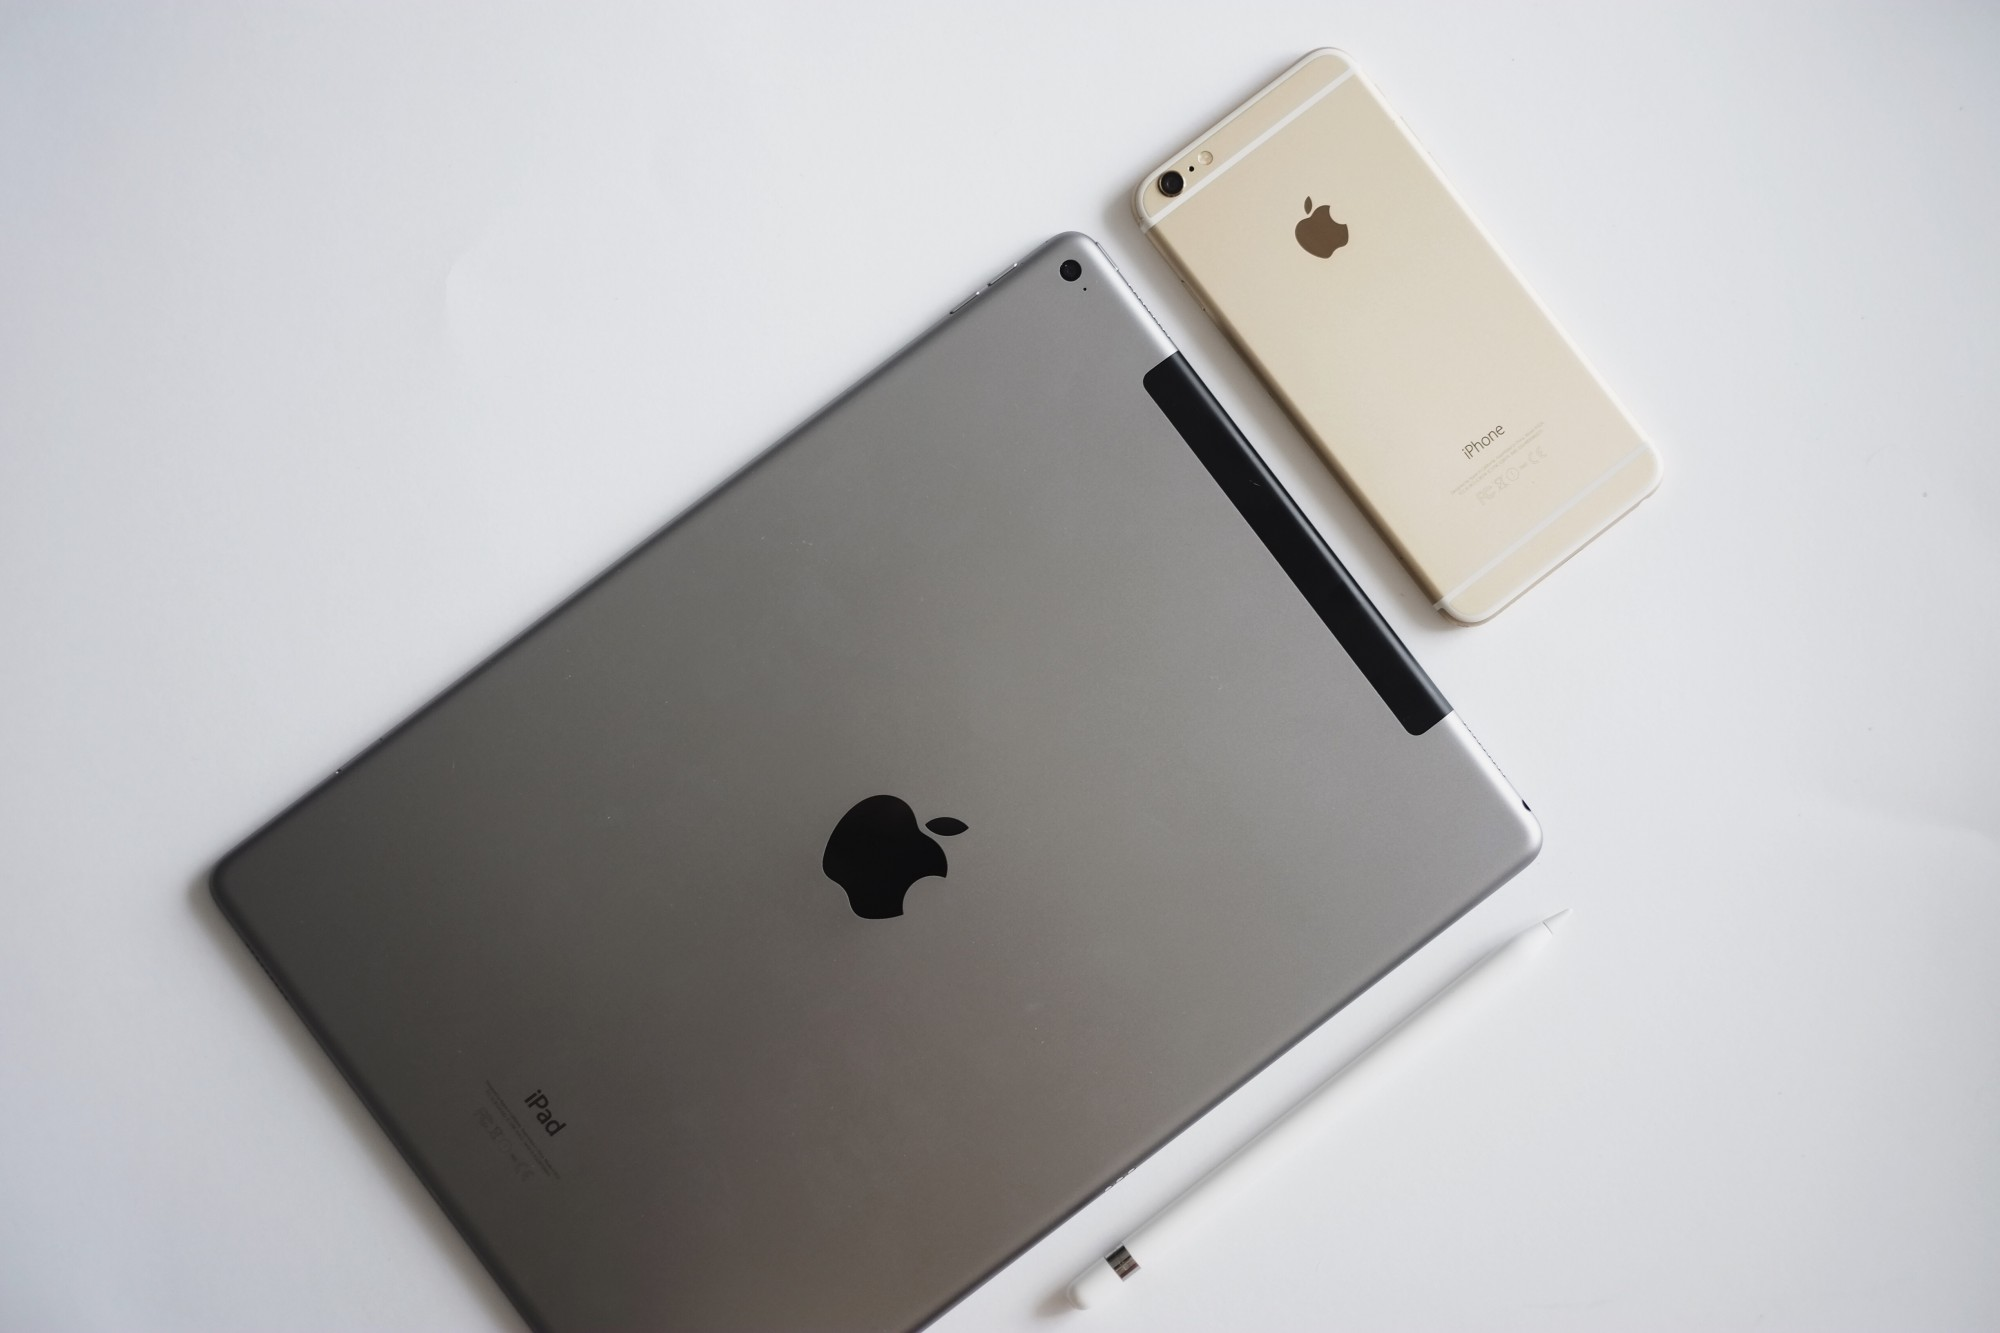 iPad Pro, Apple Pencil and the iPhone